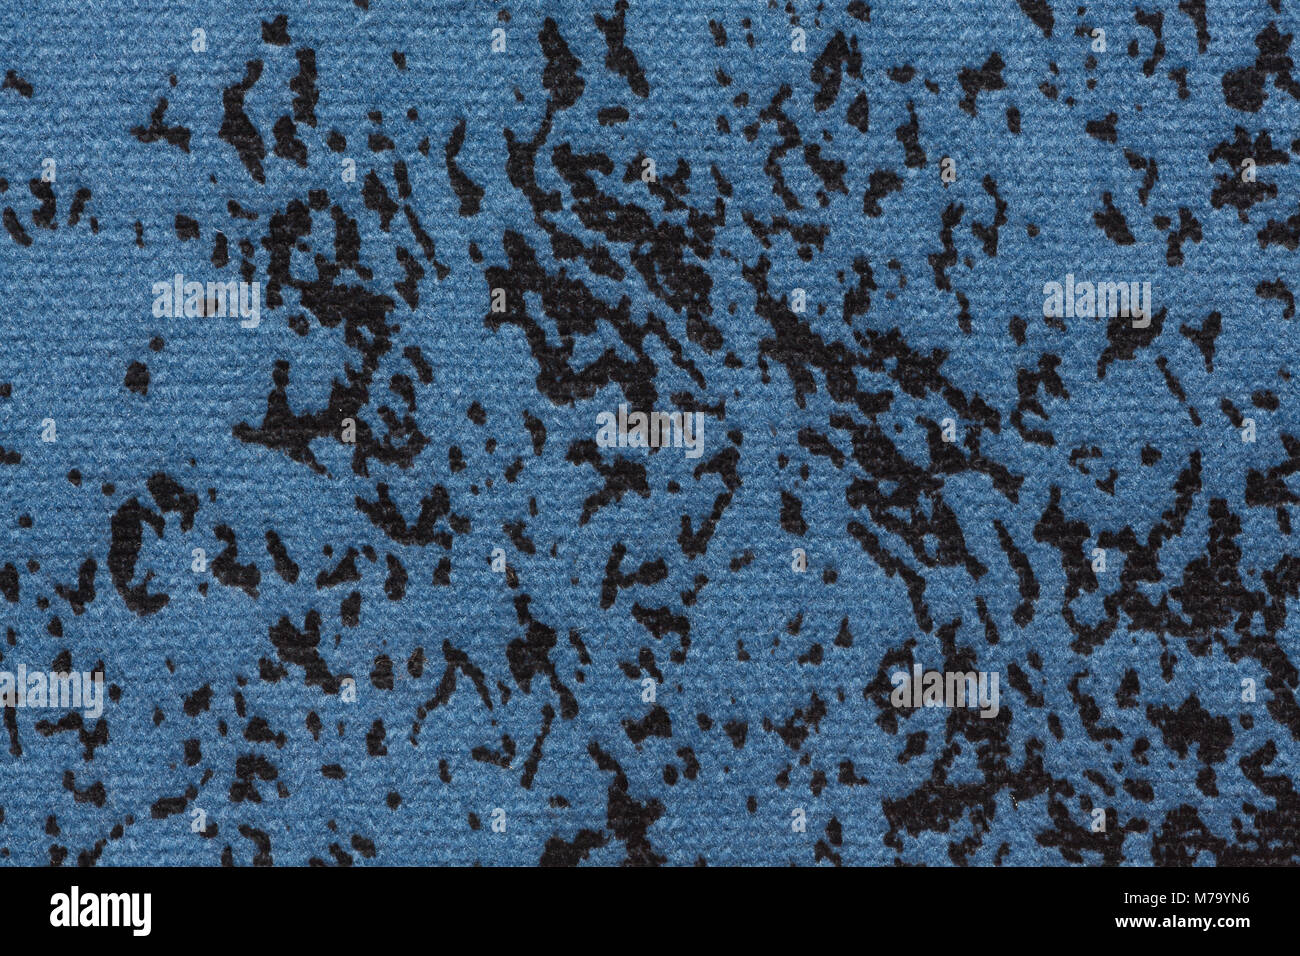 Blue Speckled Stock Photos & Blue Speckled Stock Images ...